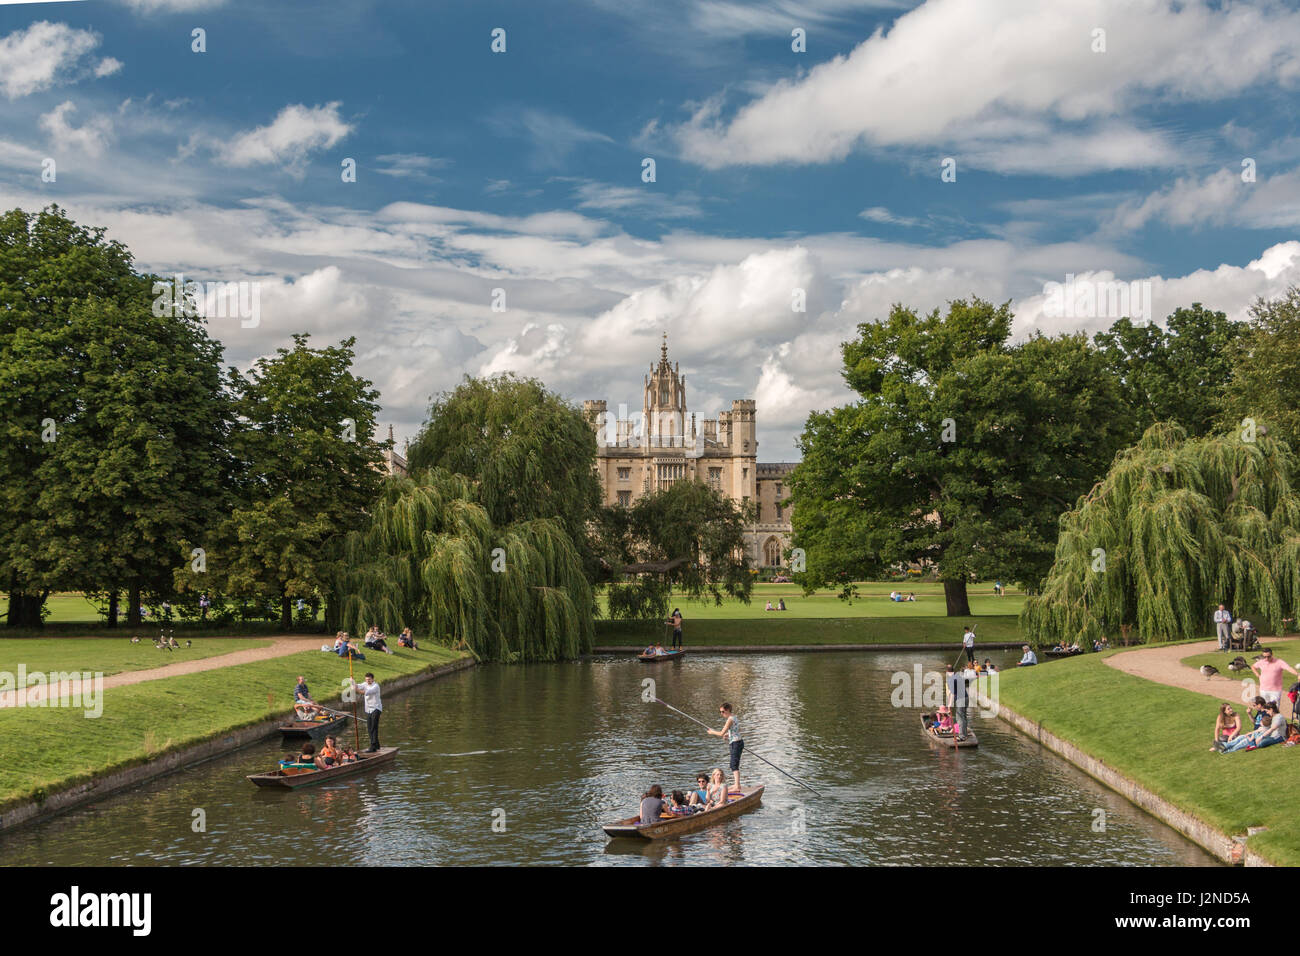 Punting on the River Cam in Cambridge with St. John's College in the background - Stock Image